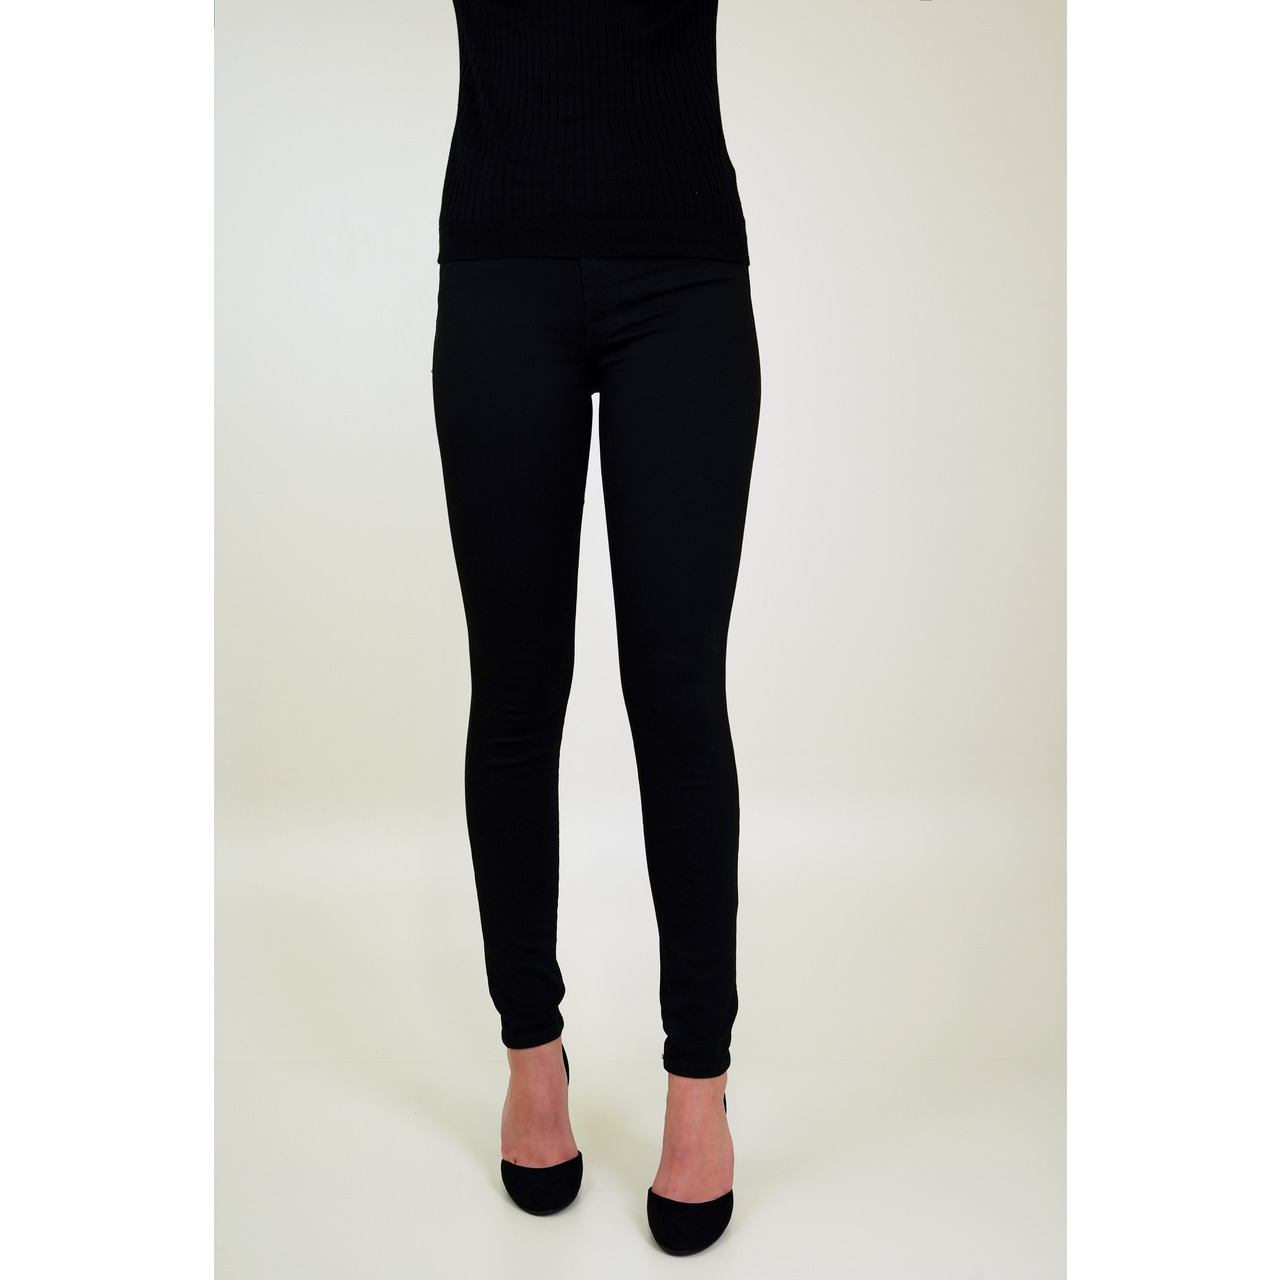 7 FOR ALL MANKIND - JEANS / THE SKINNY SLIM ILLUSION